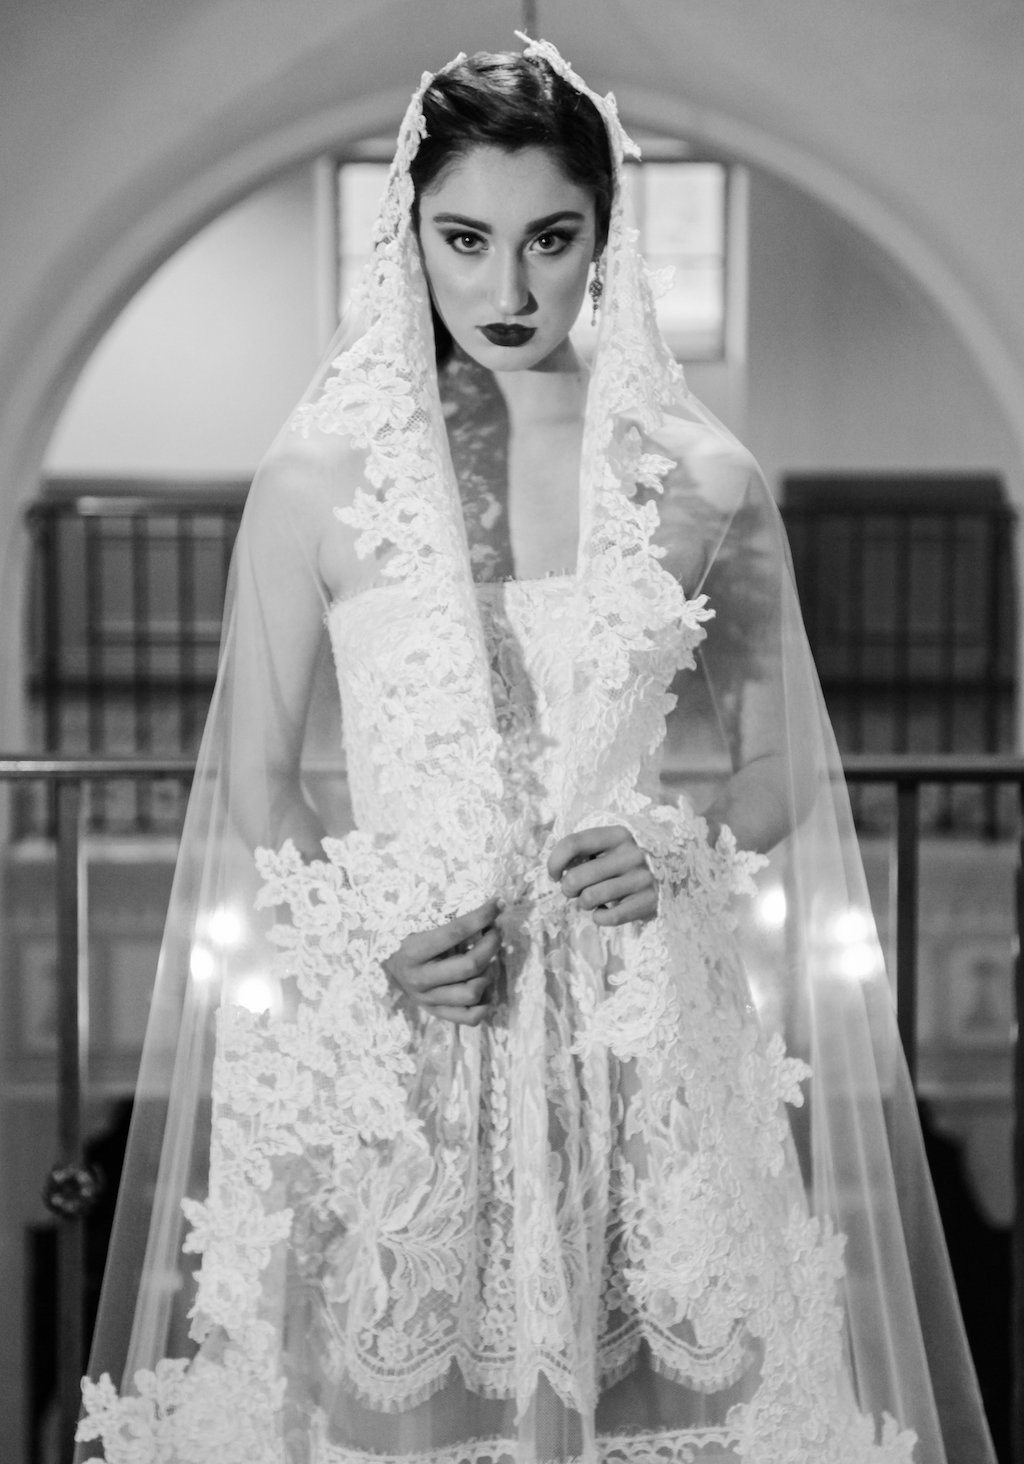 Vintage Havana Latin Inspired Bridal Style Portrait, with Floral Lace Veil